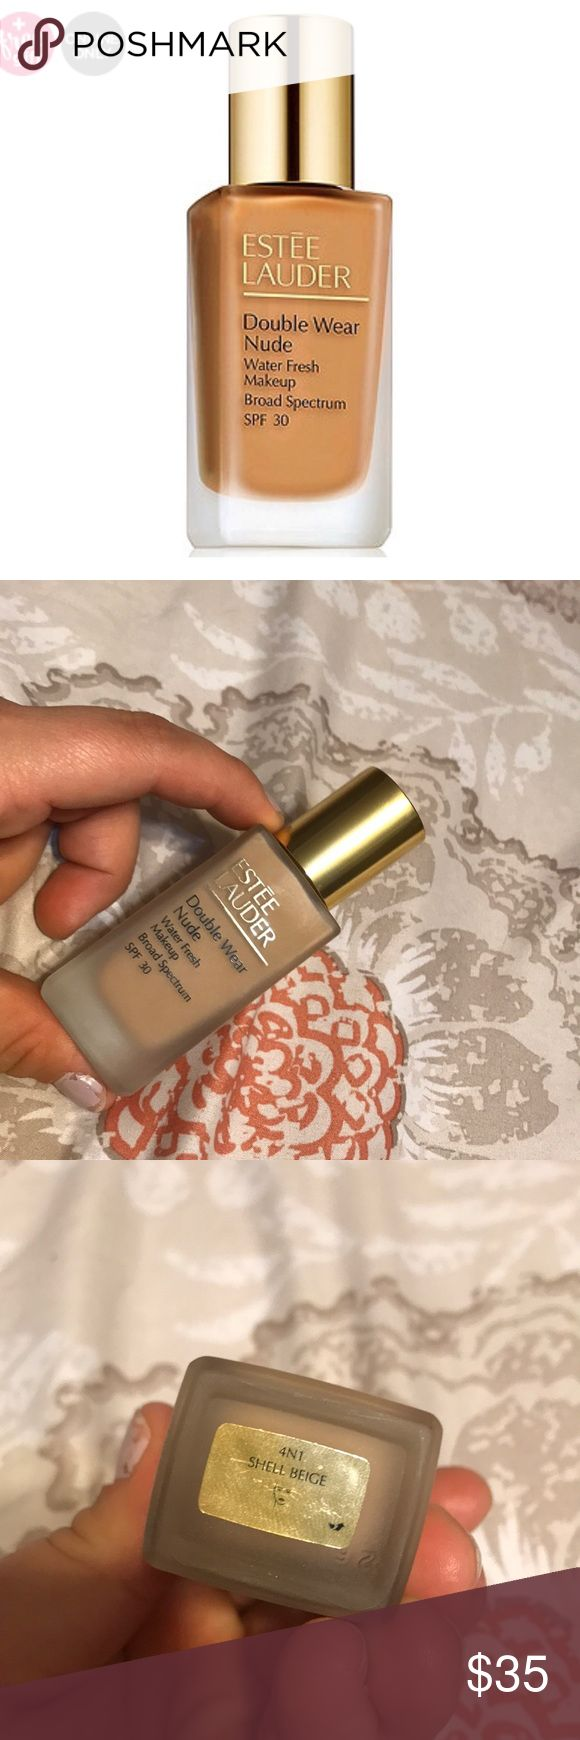 Estes Lauder Double Wear Nude foundation SHADE: 4N1 Shell Beige Gorgeous light weight and comfortable foundation. Looks fresh, natural and healthy. I find that these shades run a little darker than the original Estée Lauder Double Wear. This is a lighter coverage foundation that looks skin like and so natural!! 85% full. Just too dark for me. I used it as a mixer for other foundations. Estee Lauder Makeup Foundation